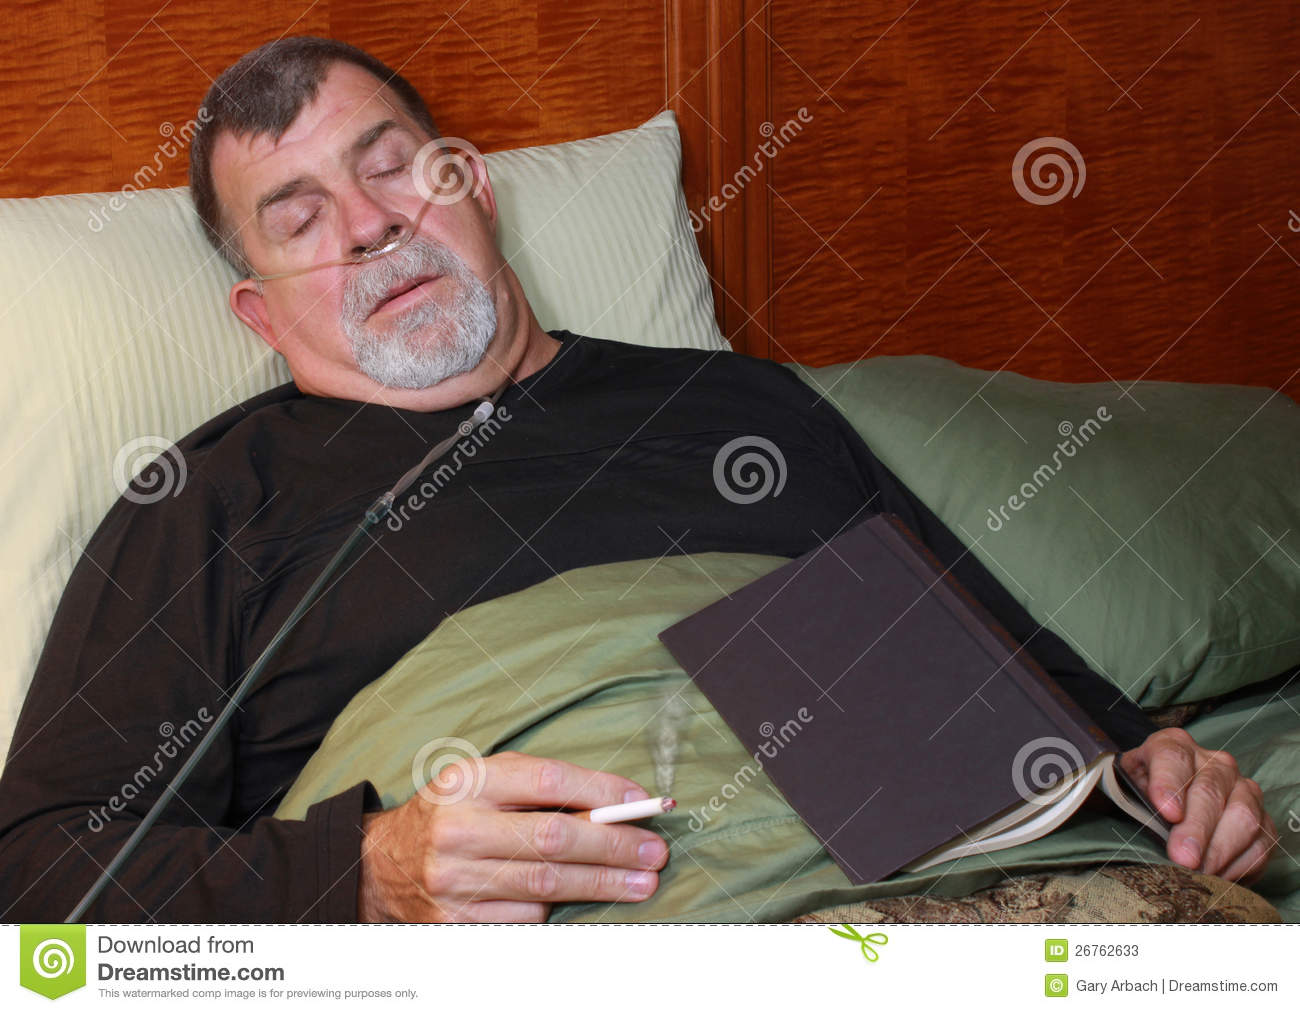 Martini Effect In Scuba Diving 2963261 in addition Scuba Tank Gas Mixture Divers Use further Stock Photos Man Oxygen Cannula Smoking Bed Image26762633 also Story as well Confined Space Attendants More Than Just A Hole Watch. on person with oxygen tank